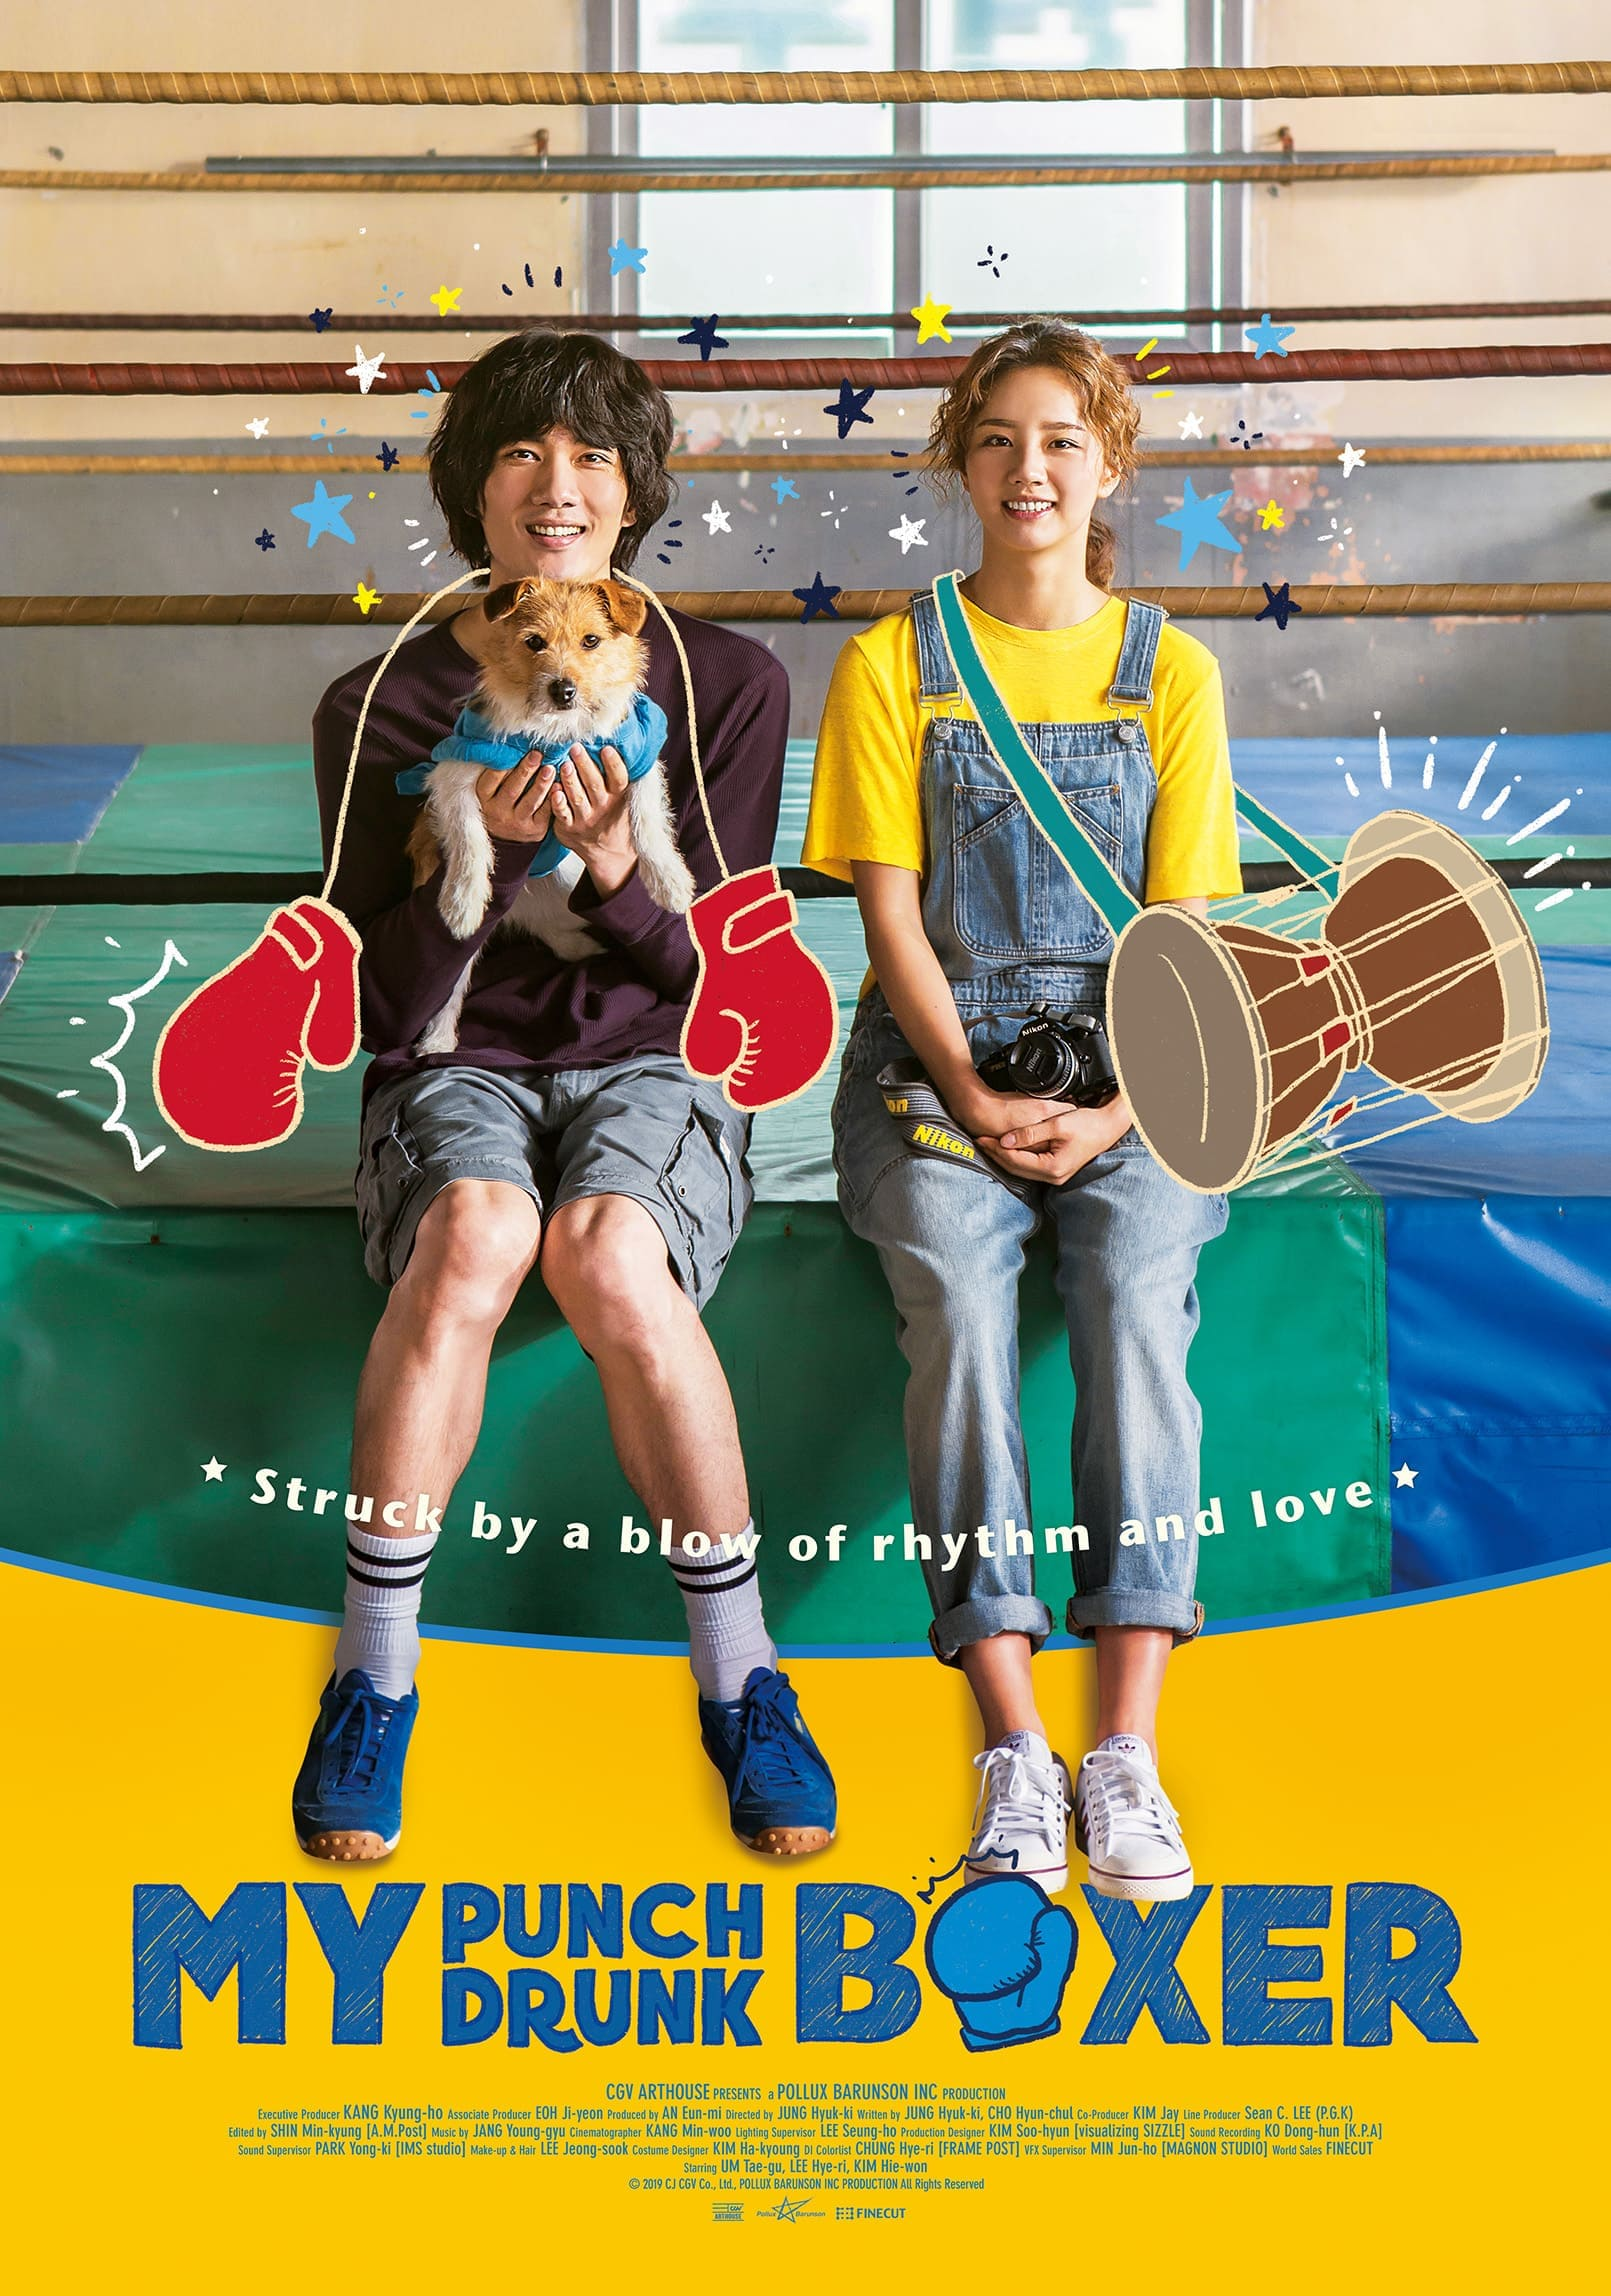 Sinopsis dan Review Film Korea My Punch-Drunk Boxer (2019)